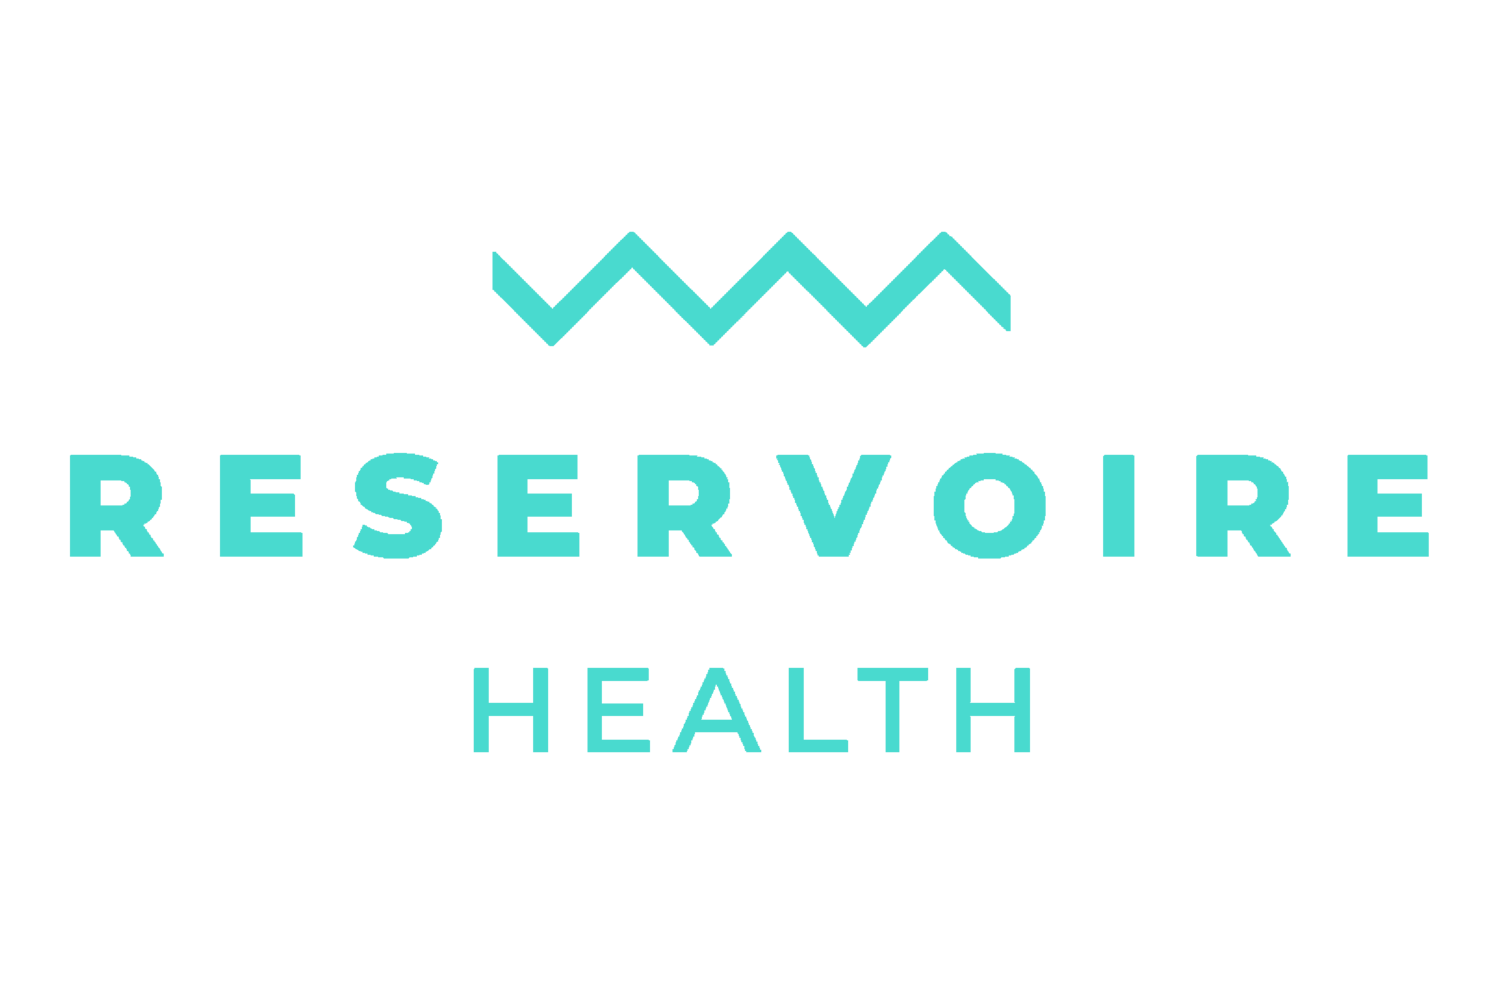 Reservoire Health - Live longer, better.